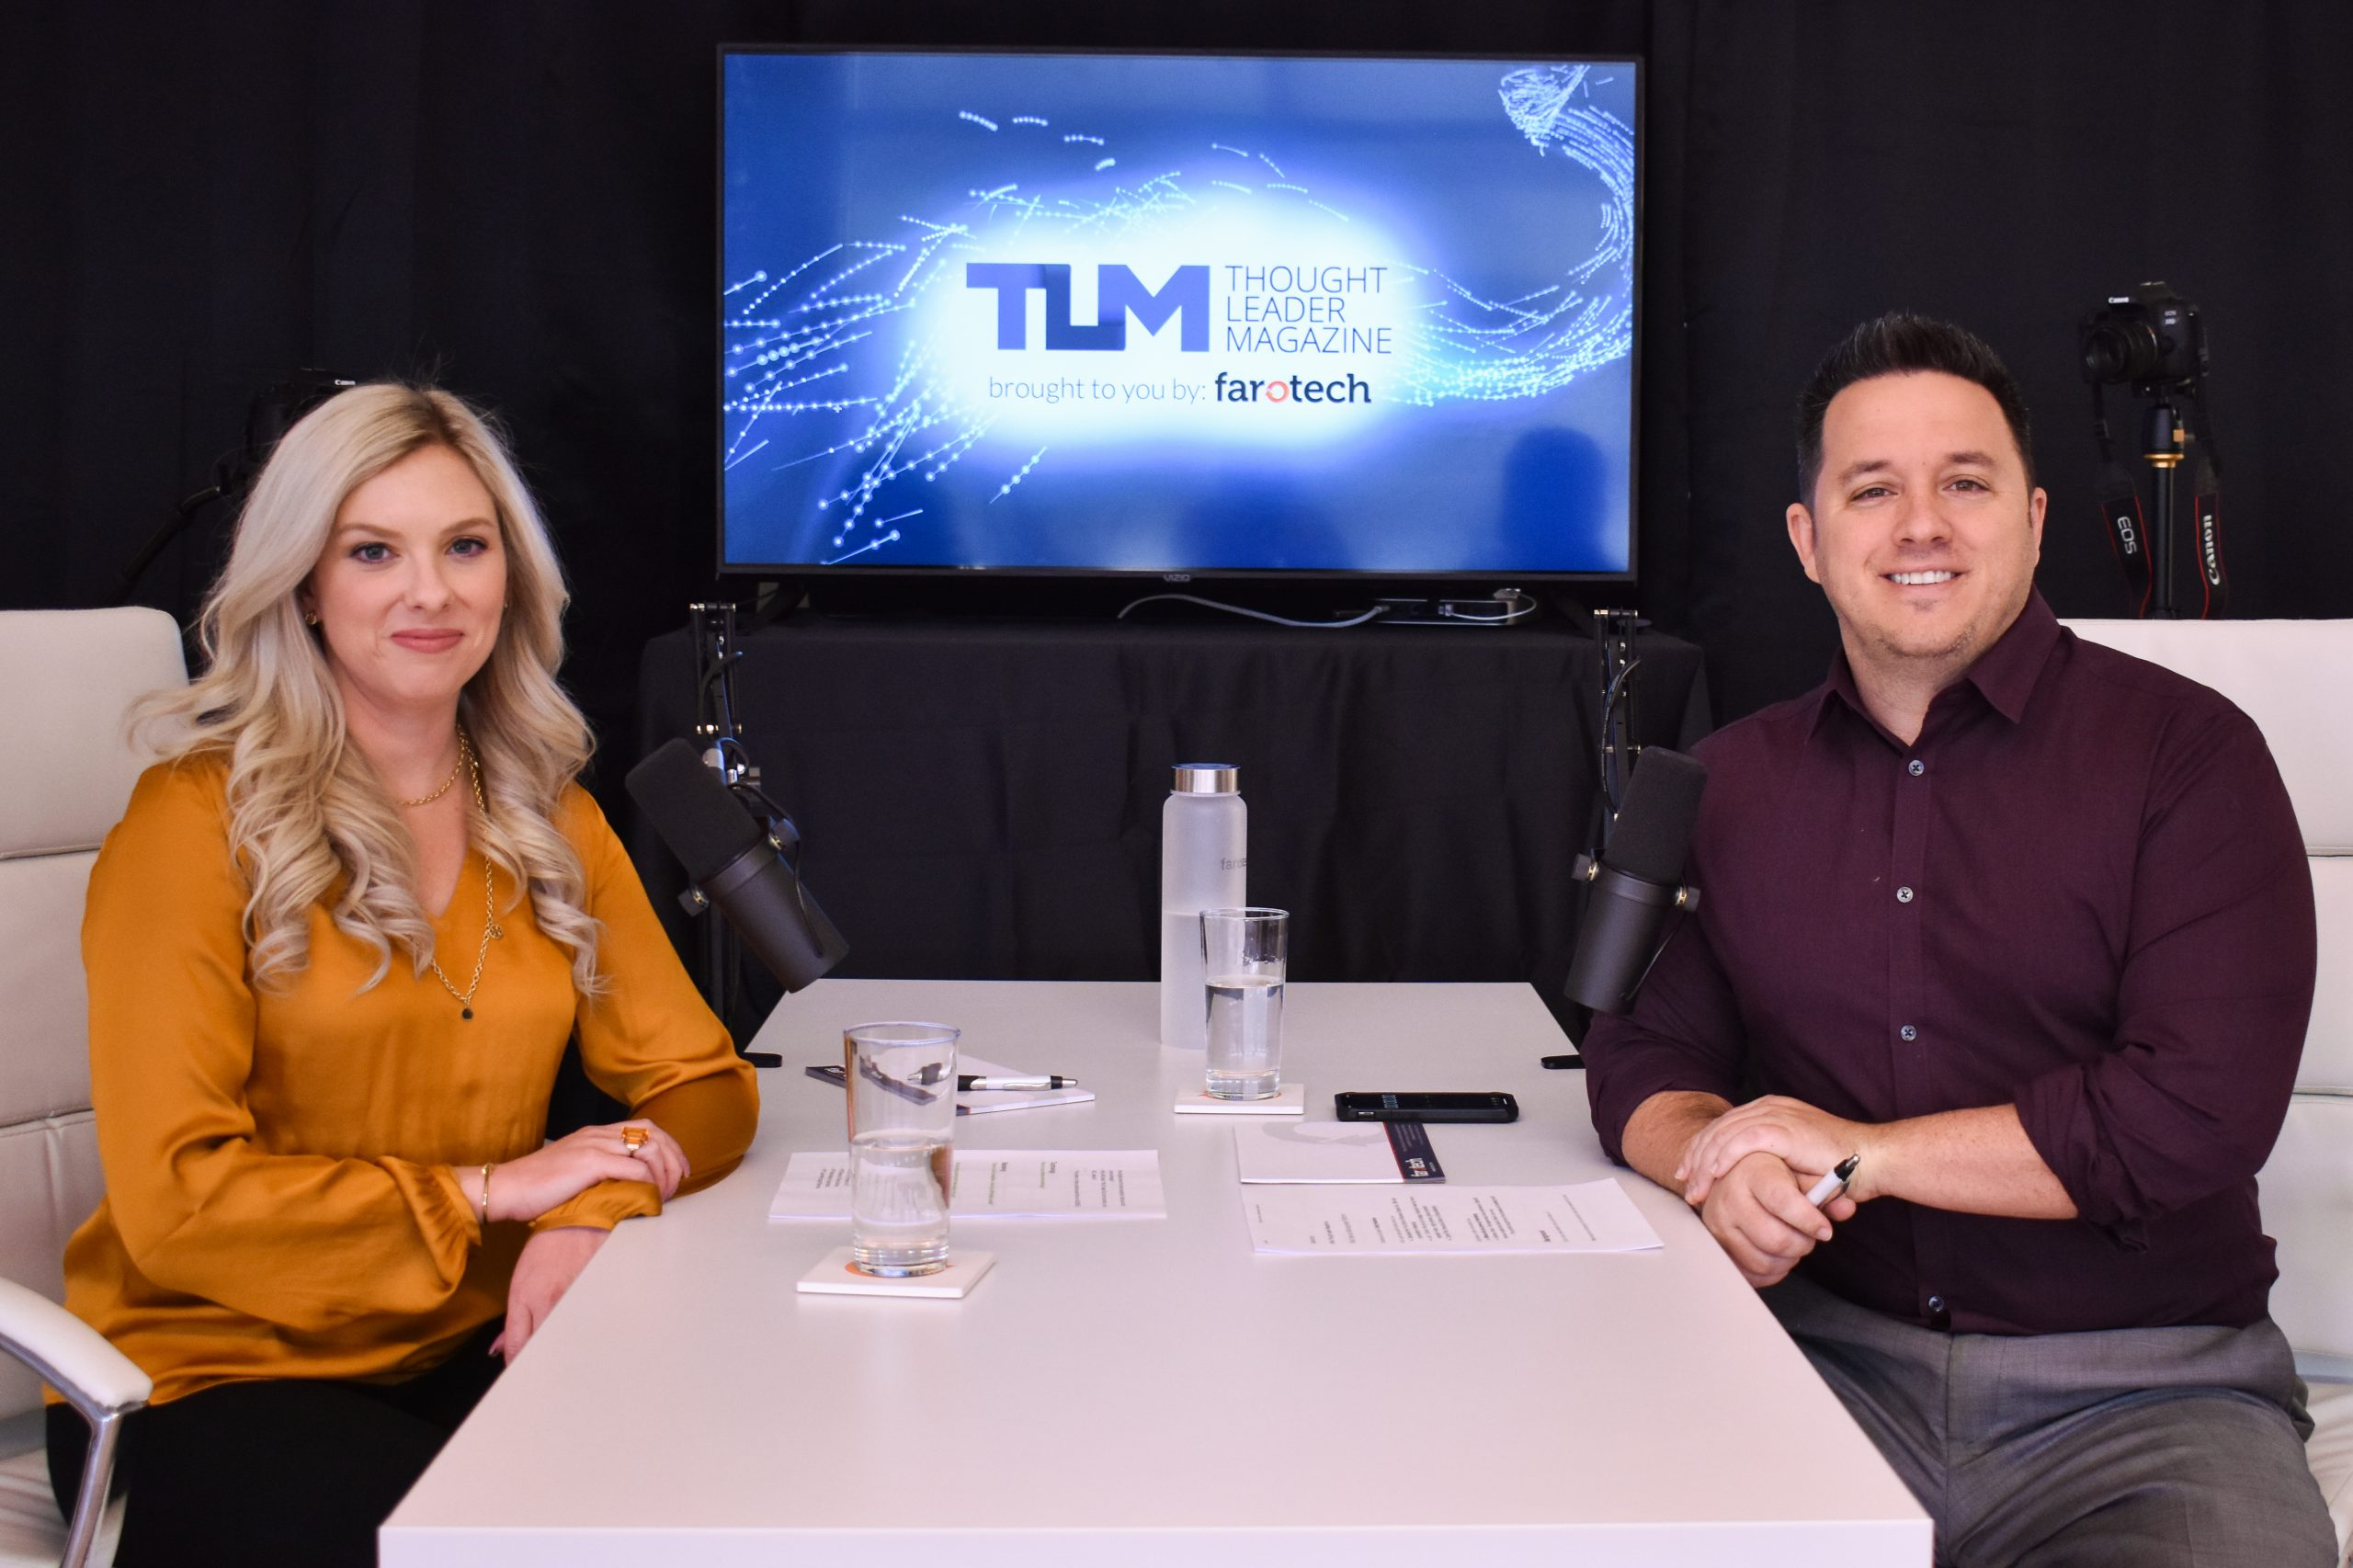 Chris and Emily sitting at a table recording a podcast